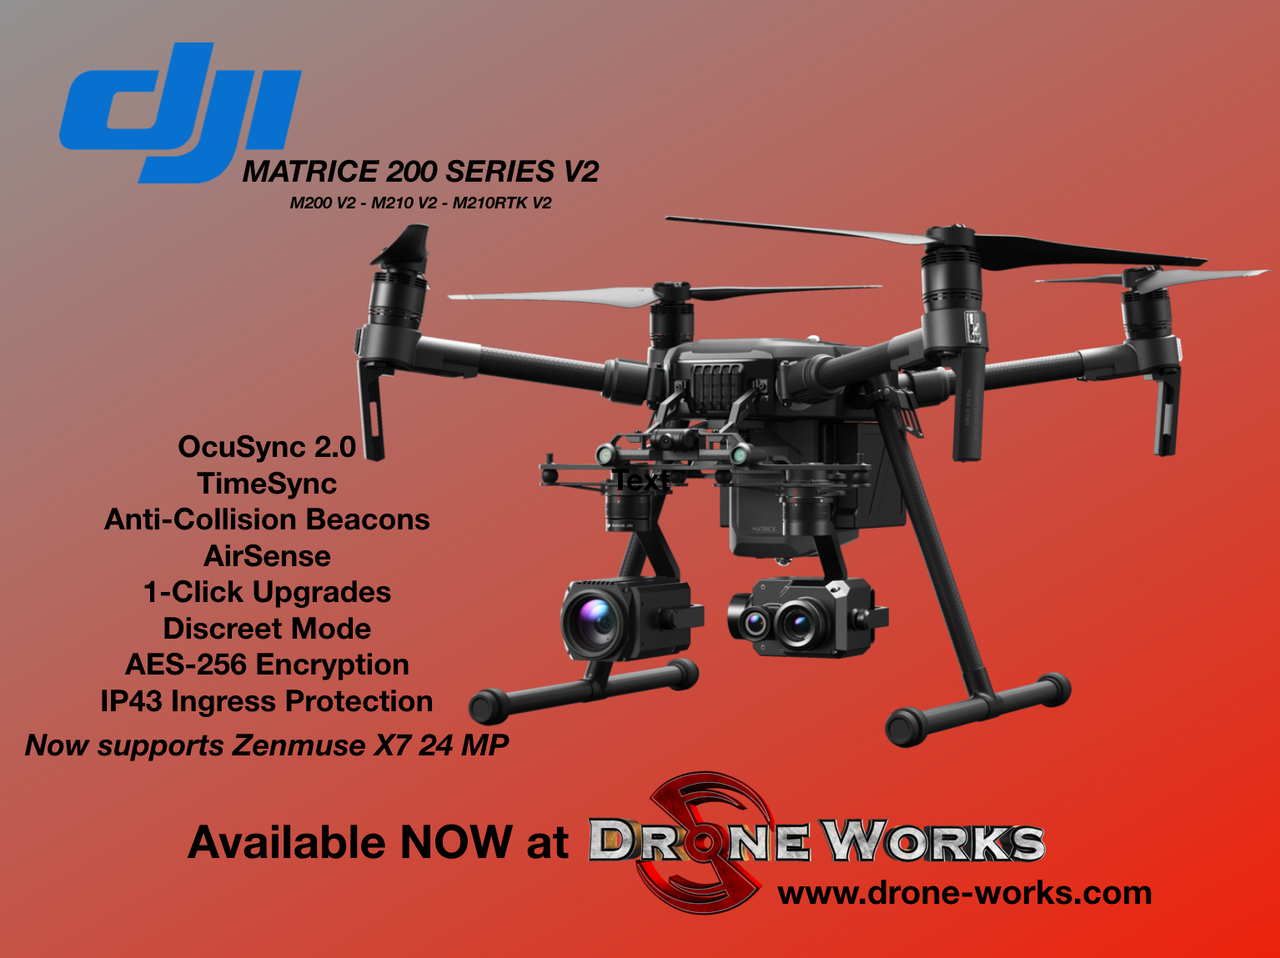 Built to Endure. Engineered to Adapt.  The ultimate platform for aerial productivity combines a rugged design and simple configurability to work as a solution for a variety of industrial applications. Improvements to the M200 Series V2 enhance intelligent control systems, flight performance, and add flight safety and data security features.